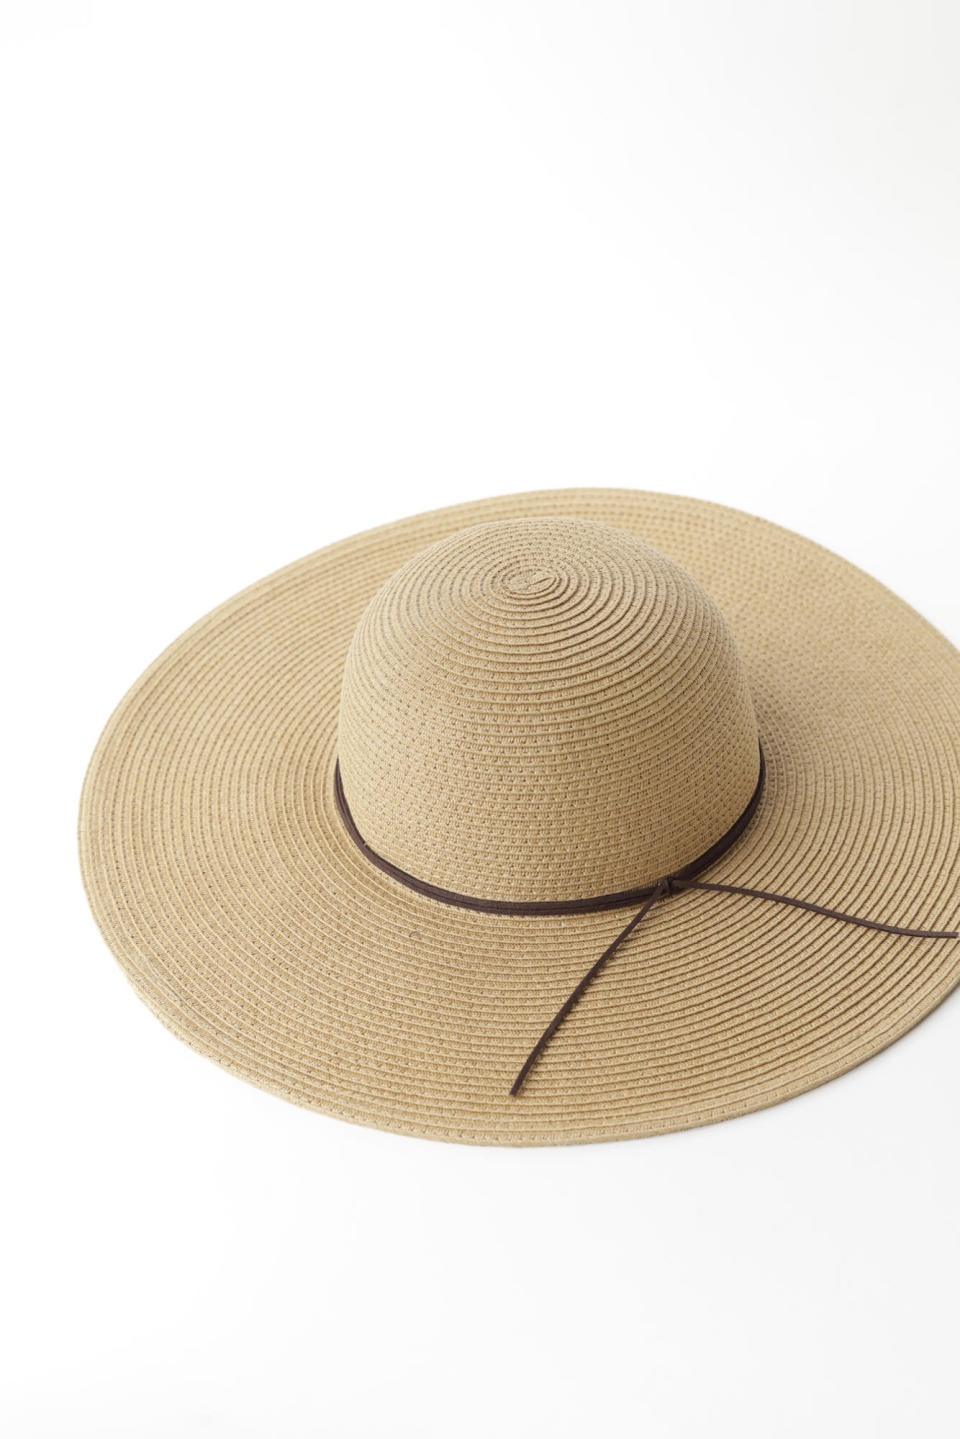 """<p>Mom will definitely appreciate this <a href=""""https://www.graceeleyae.com/"""" rel=""""nofollow noopener"""" target=""""_blank"""" data-ylk=""""slk:summer sun hat"""" class=""""link rapid-noclick-resp"""">summer sun hat</a> with a thoughtful twist! Lined with Grace Eleyae's signature charmeuse satin, the stylish topper won't get caught in your tresses and will leave it frizz-free.</p> <p><strong>$55, <a href=""""https://www.graceeleyae.com/products/havanna-satin-lined-straw-hat"""" rel=""""nofollow noopener"""" target=""""_blank"""" data-ylk=""""slk:graceeleyae.com"""" class=""""link rapid-noclick-resp"""">graceeleyae.com</a></strong></p> <p><strong>*Use discount code EWeekly-Mom for 15% off</strong></p>"""